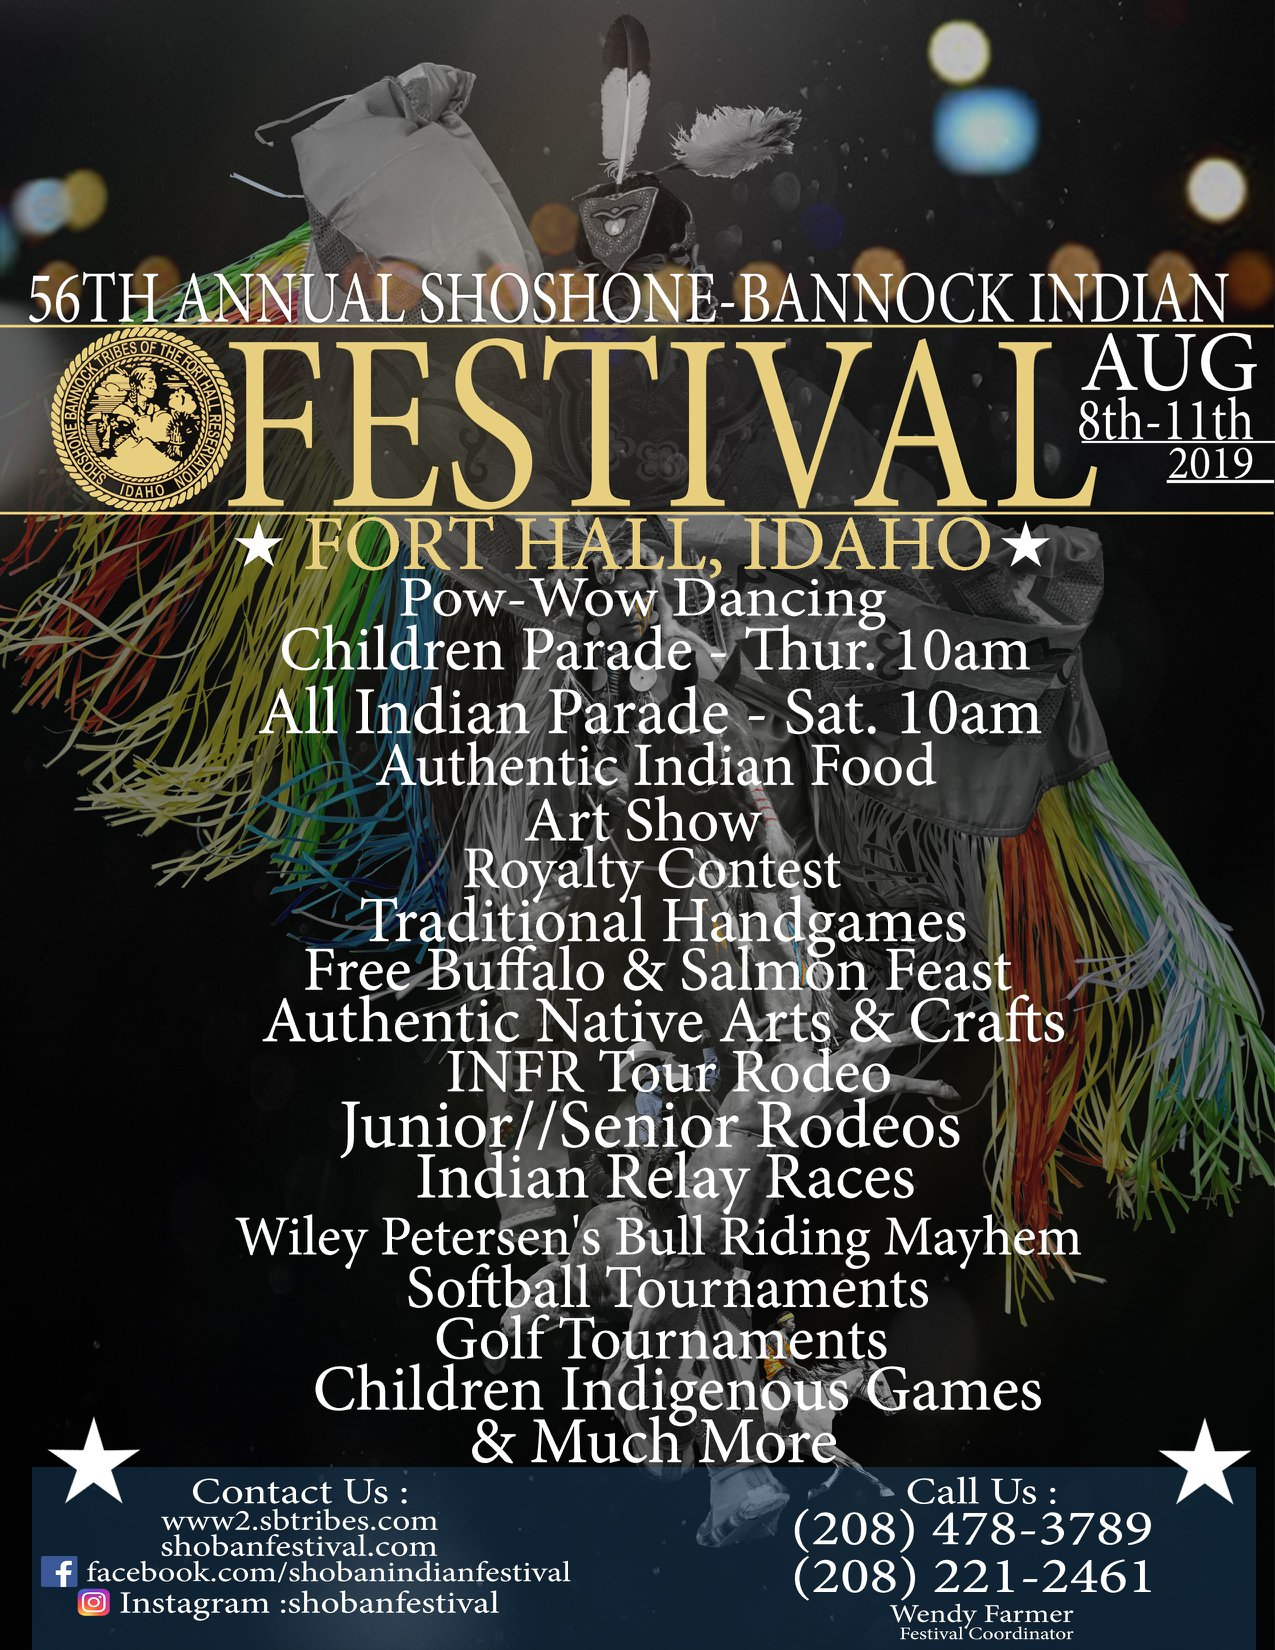 Shoshone-Bannock Indian Festival, Fort Hall Idaho